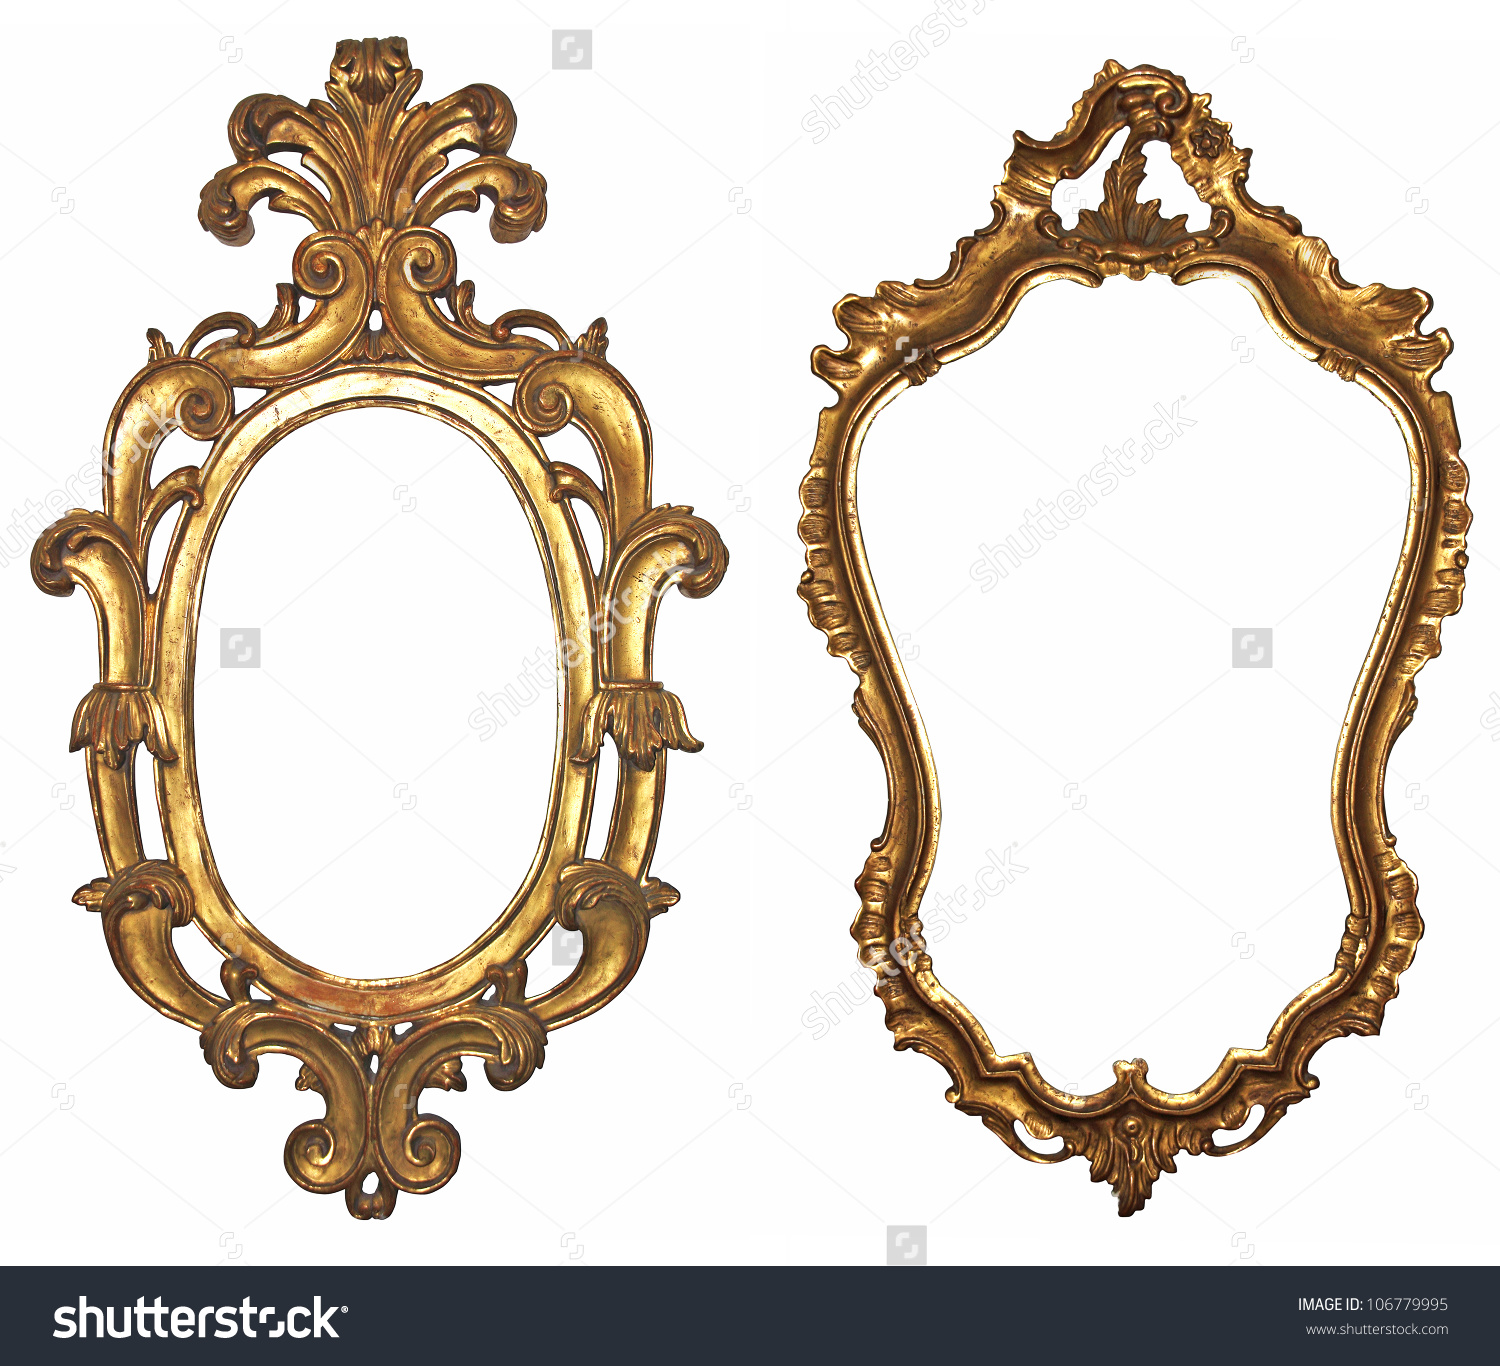 Old Gilded Wooden Frames Mirrors Stock Photo 106779995.